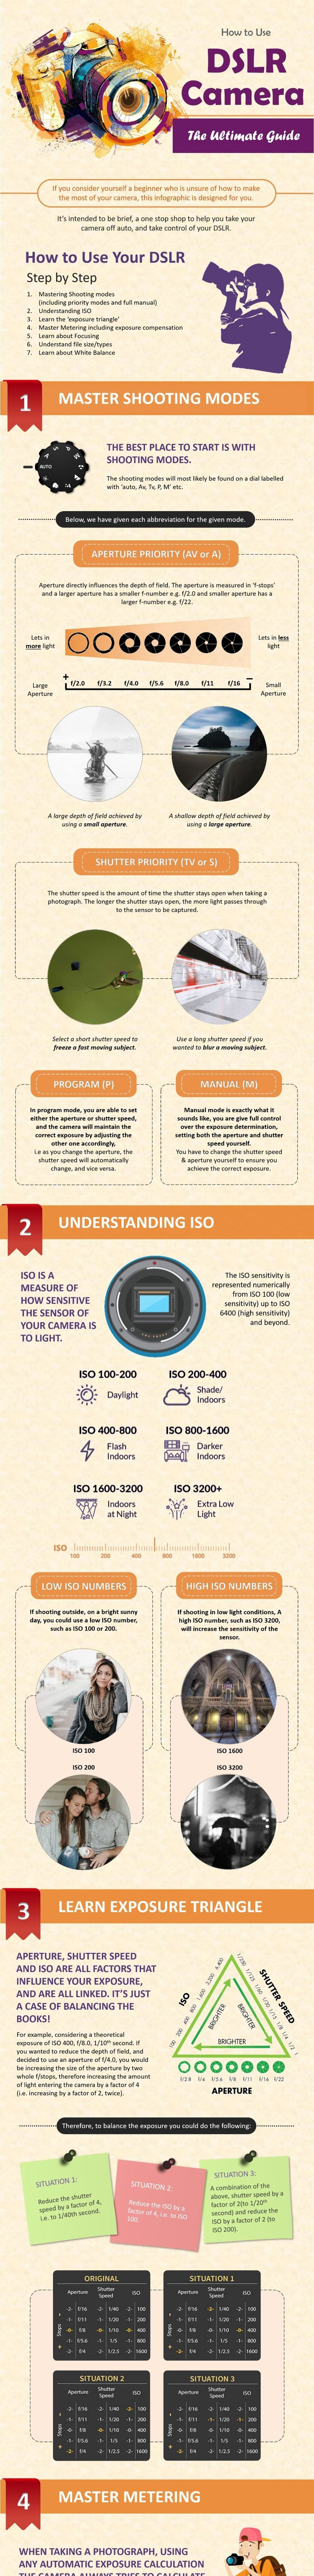 How to Use a DSLR Camera - The Ultimate Guide (Infographic) - 1